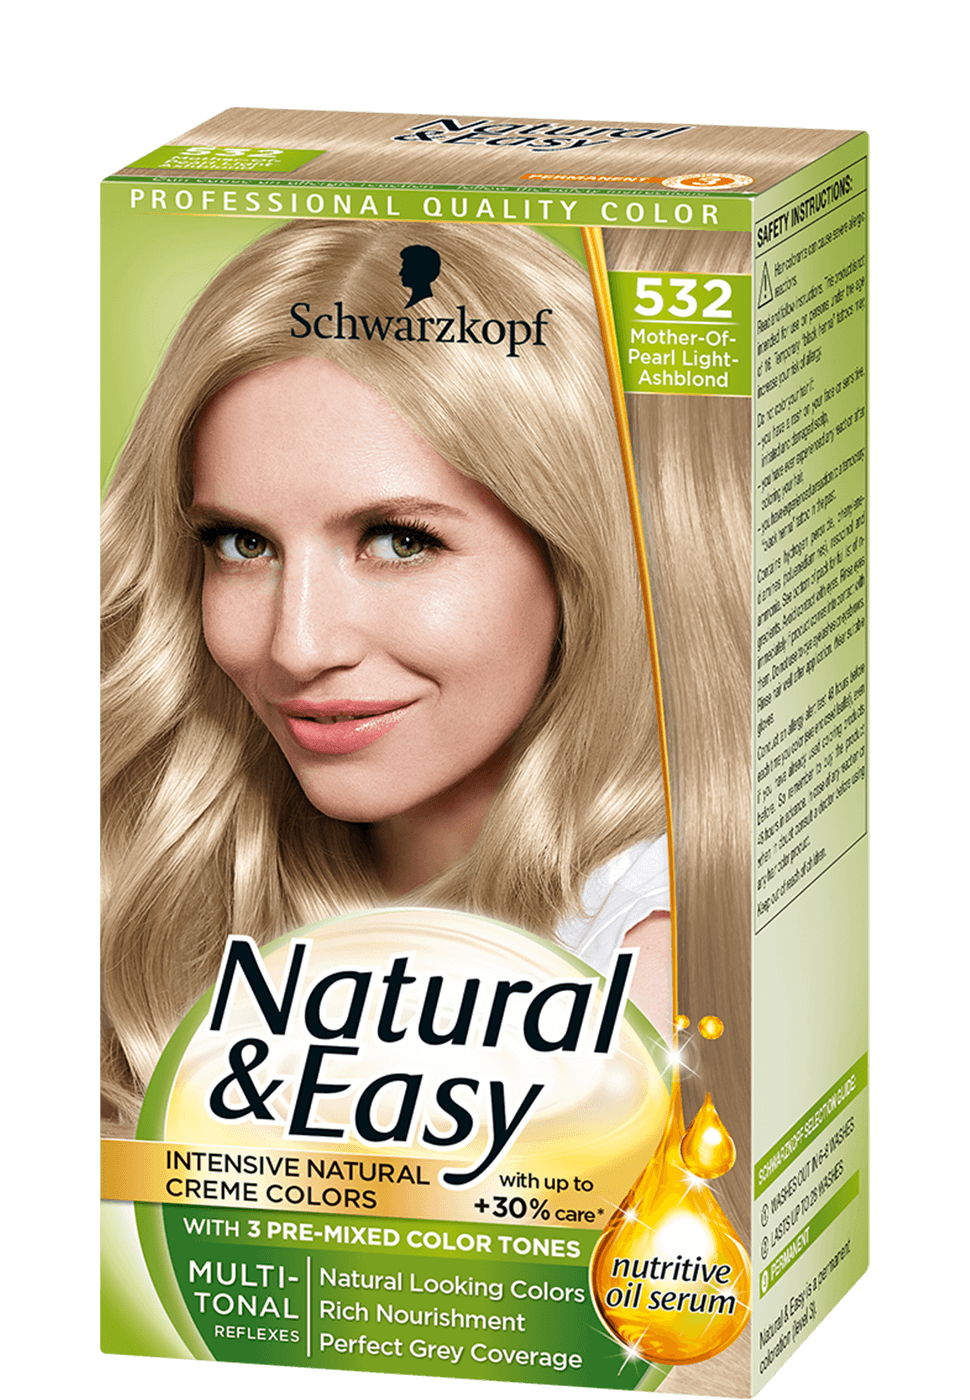 natural_easy_com_blonde_hair_532_mother_of_pearl_light_ashblond_970x1400